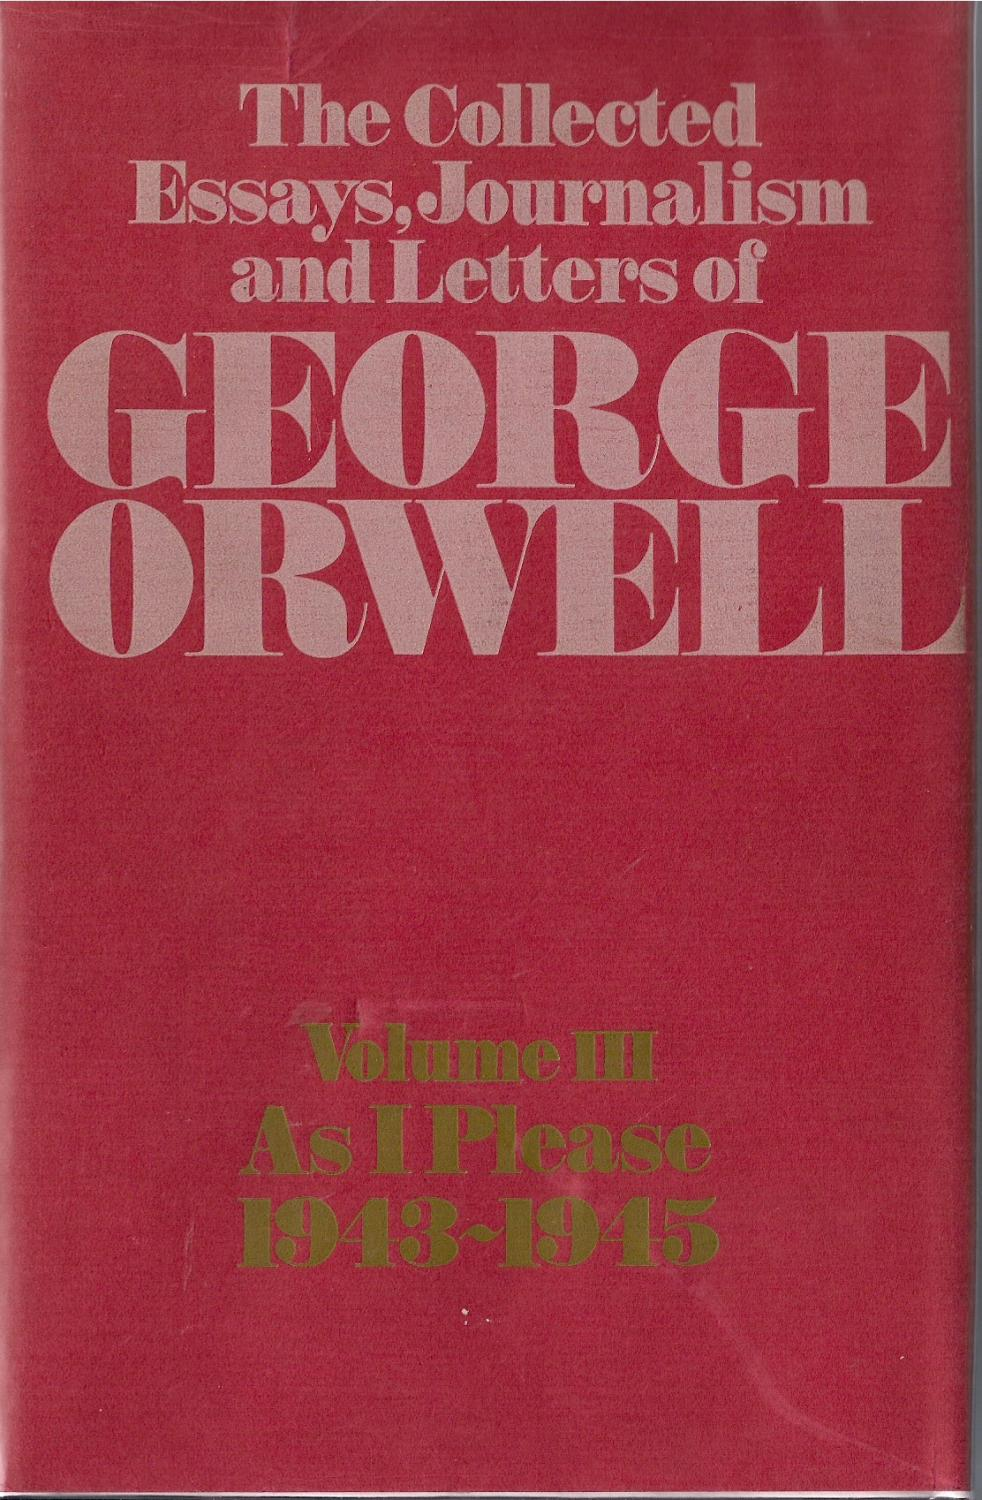 Huck Finn Essays Collected Essays Journalism Letters George Orwell First Edition Taming Of The Shrew Essay also Argumentative Essay On Homework Essays George Orwell Andy Gardner Historian Islington Faces George  Annotated Bibliography Essay